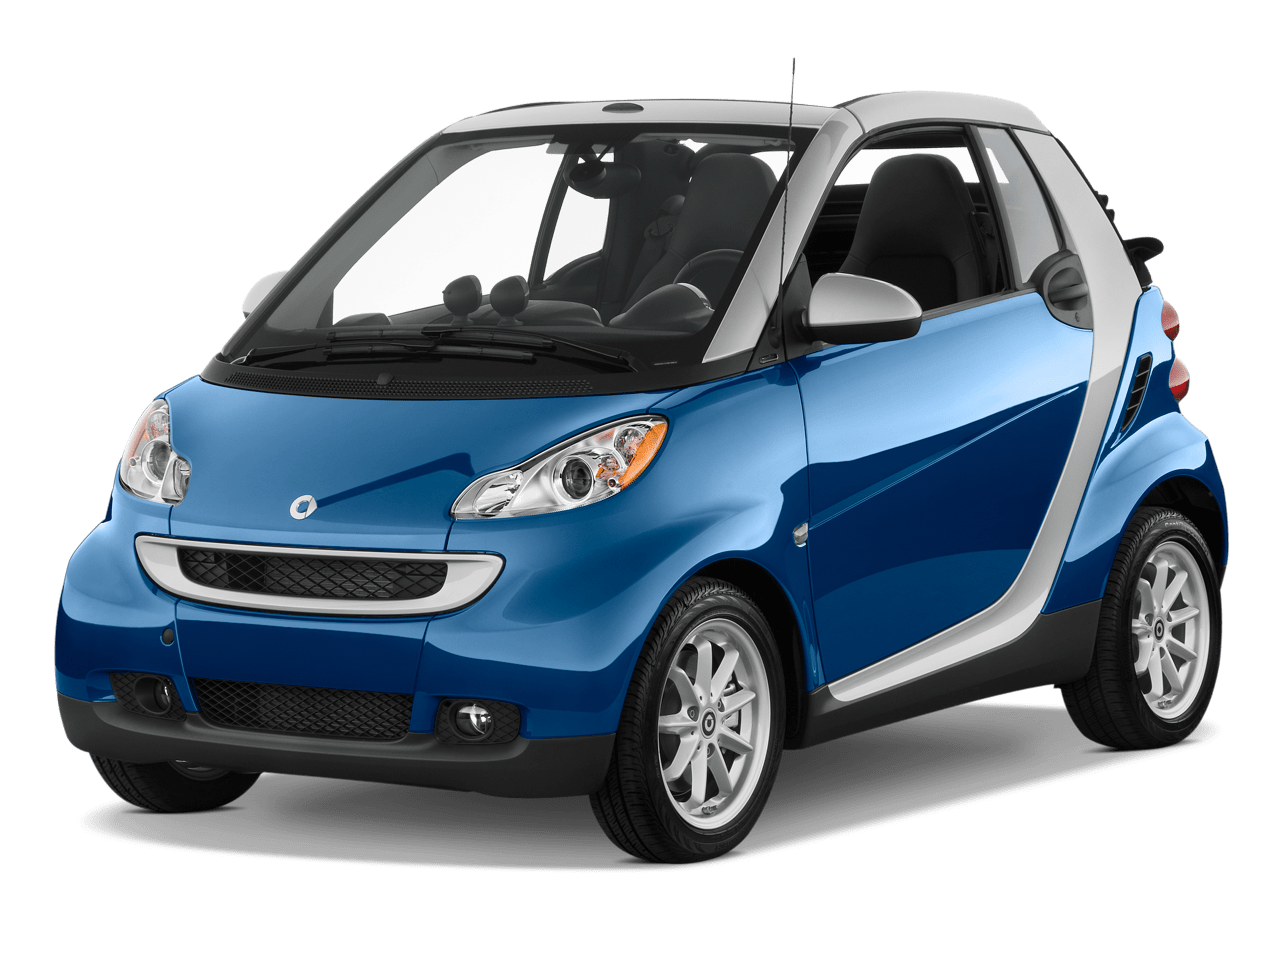 2009 smart fortwo reviews